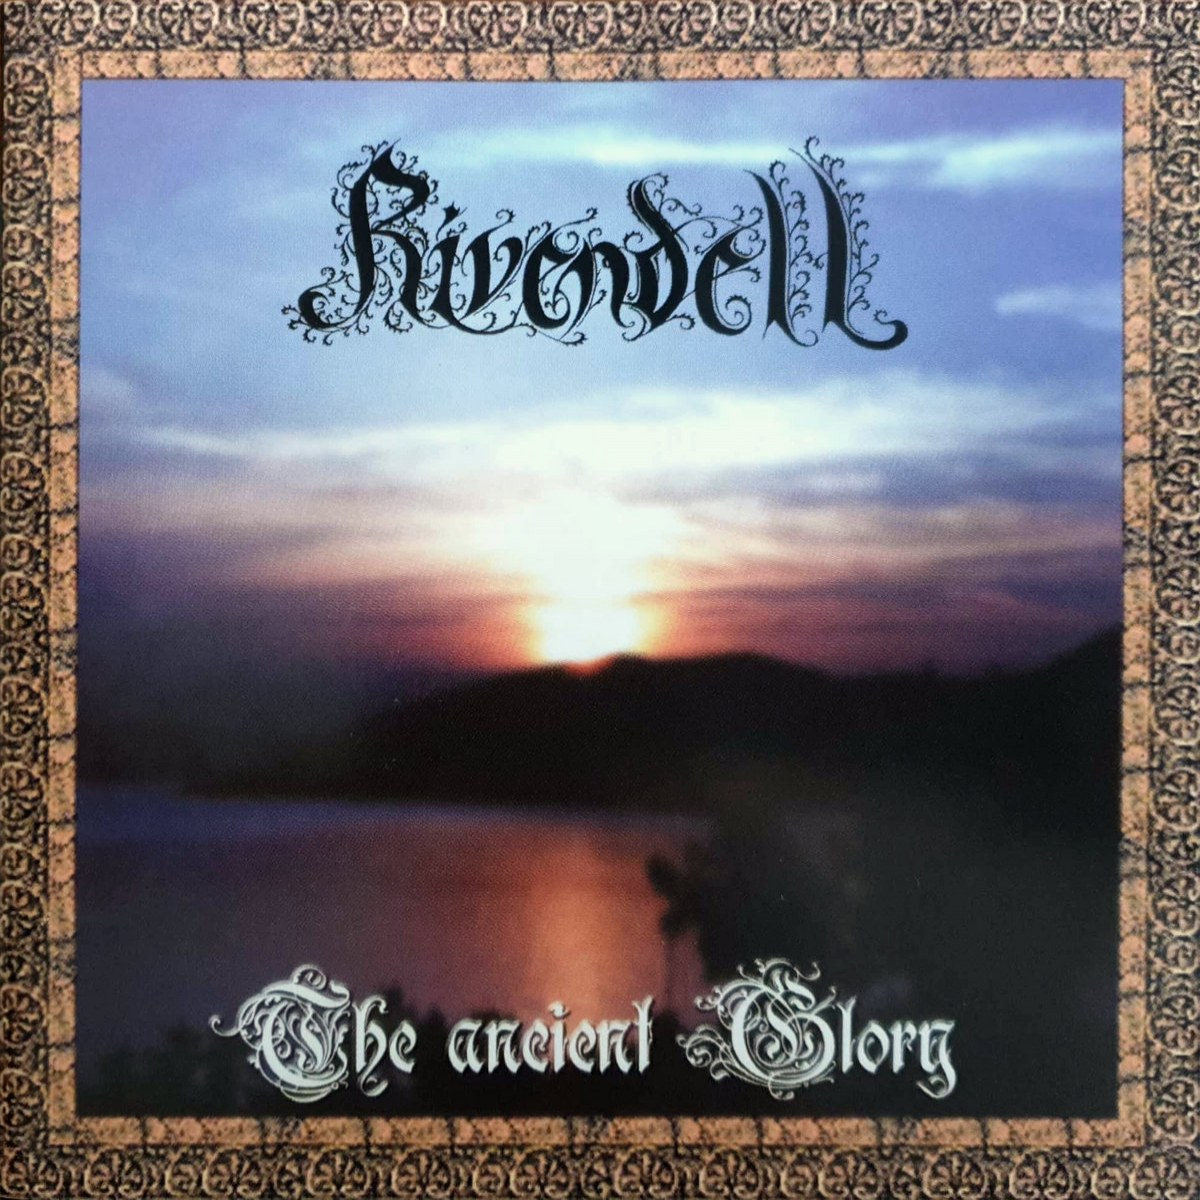 Review for Rivendell - The Ancient Glory